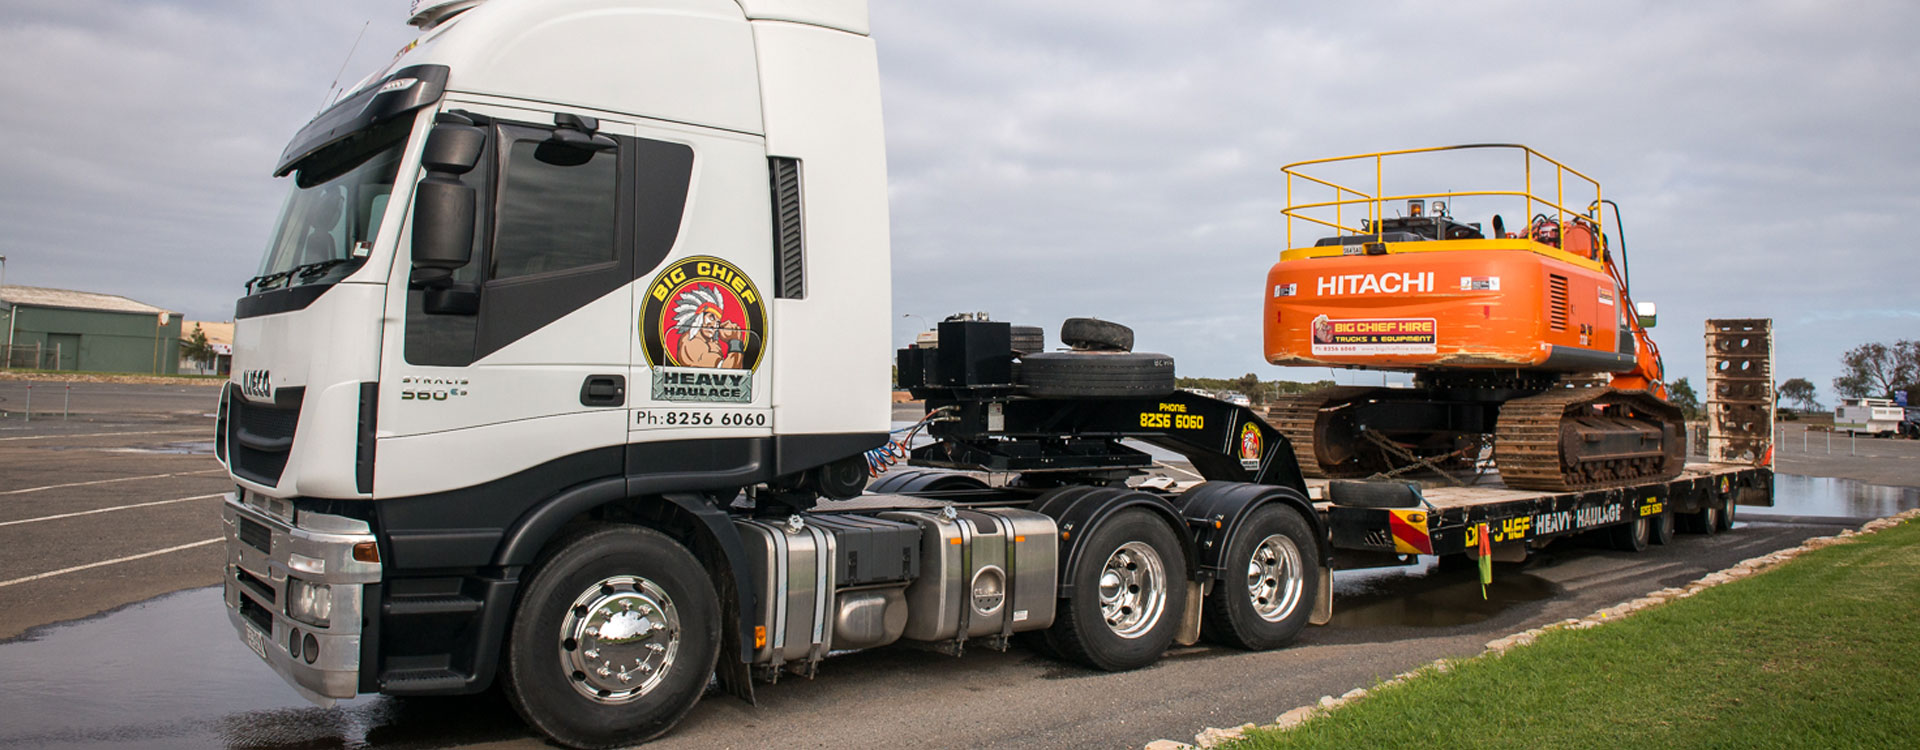 Big Chief Heavy Haulage Prime-mover Truck with excavator on trailer